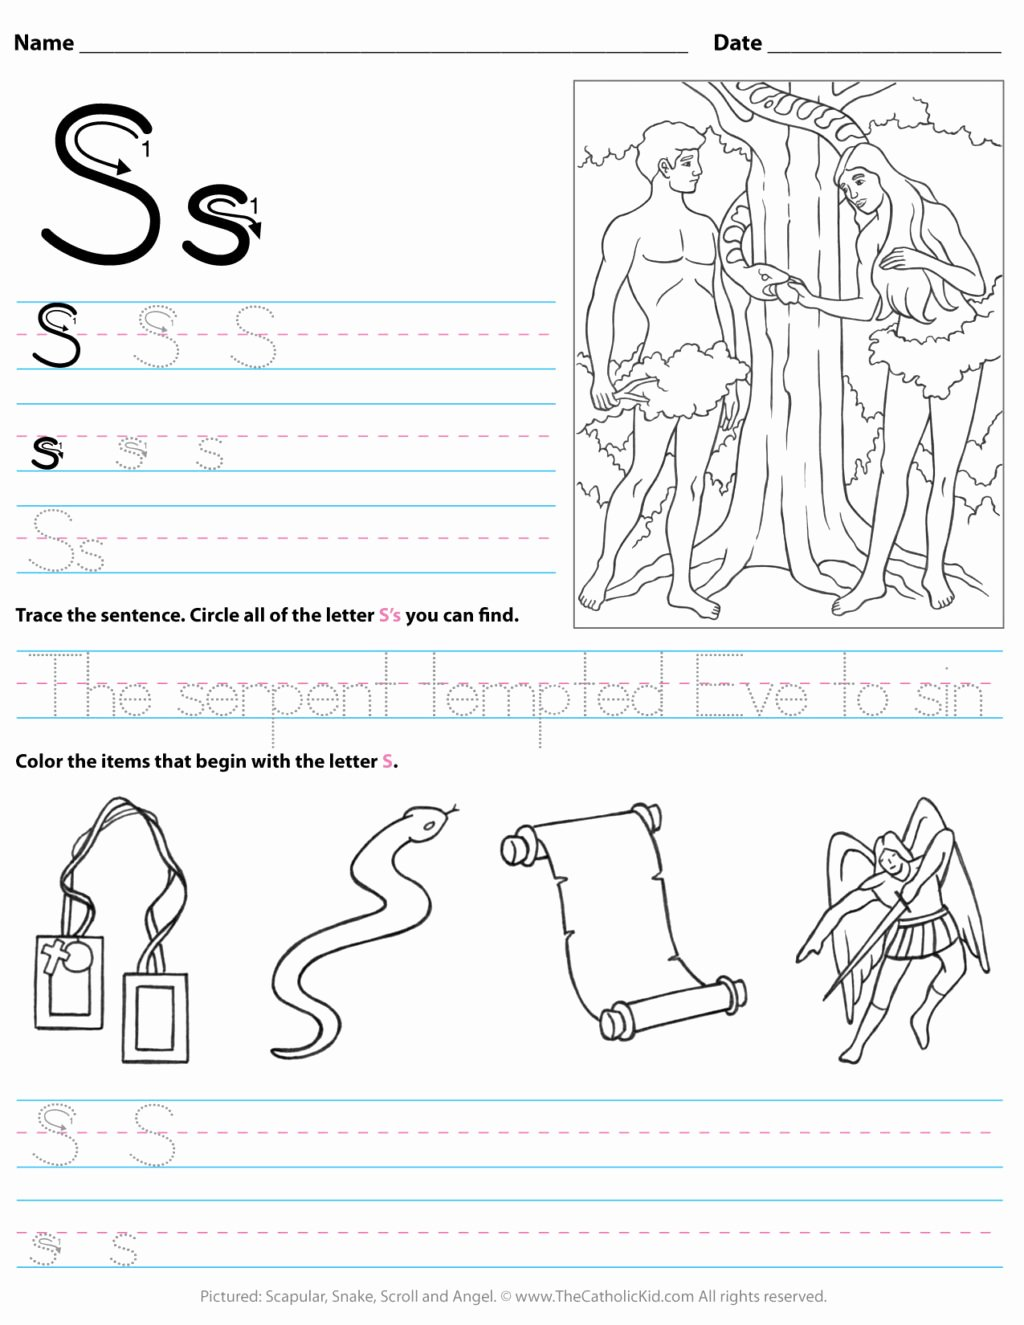 Spring Printable Worksheets for Preschoolers Beautiful Worksheet Freeetter Worksheets for Kindergarten